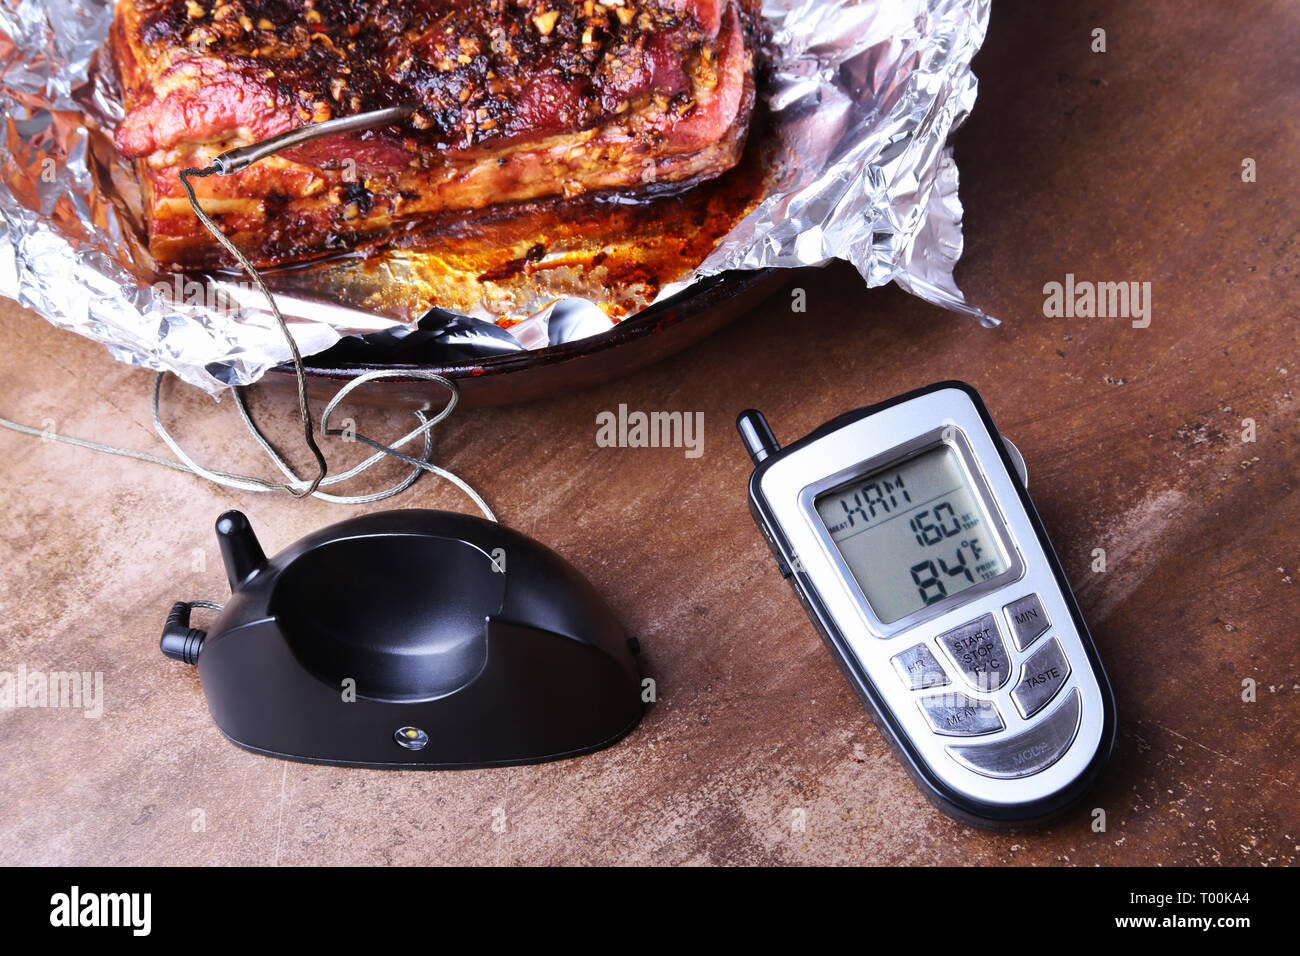 Grilled Steak in a pan and Wireless Remote Digital Cooking Food Probe Meat Thermometer For Grill on a black background. Copy space. - Stock Image